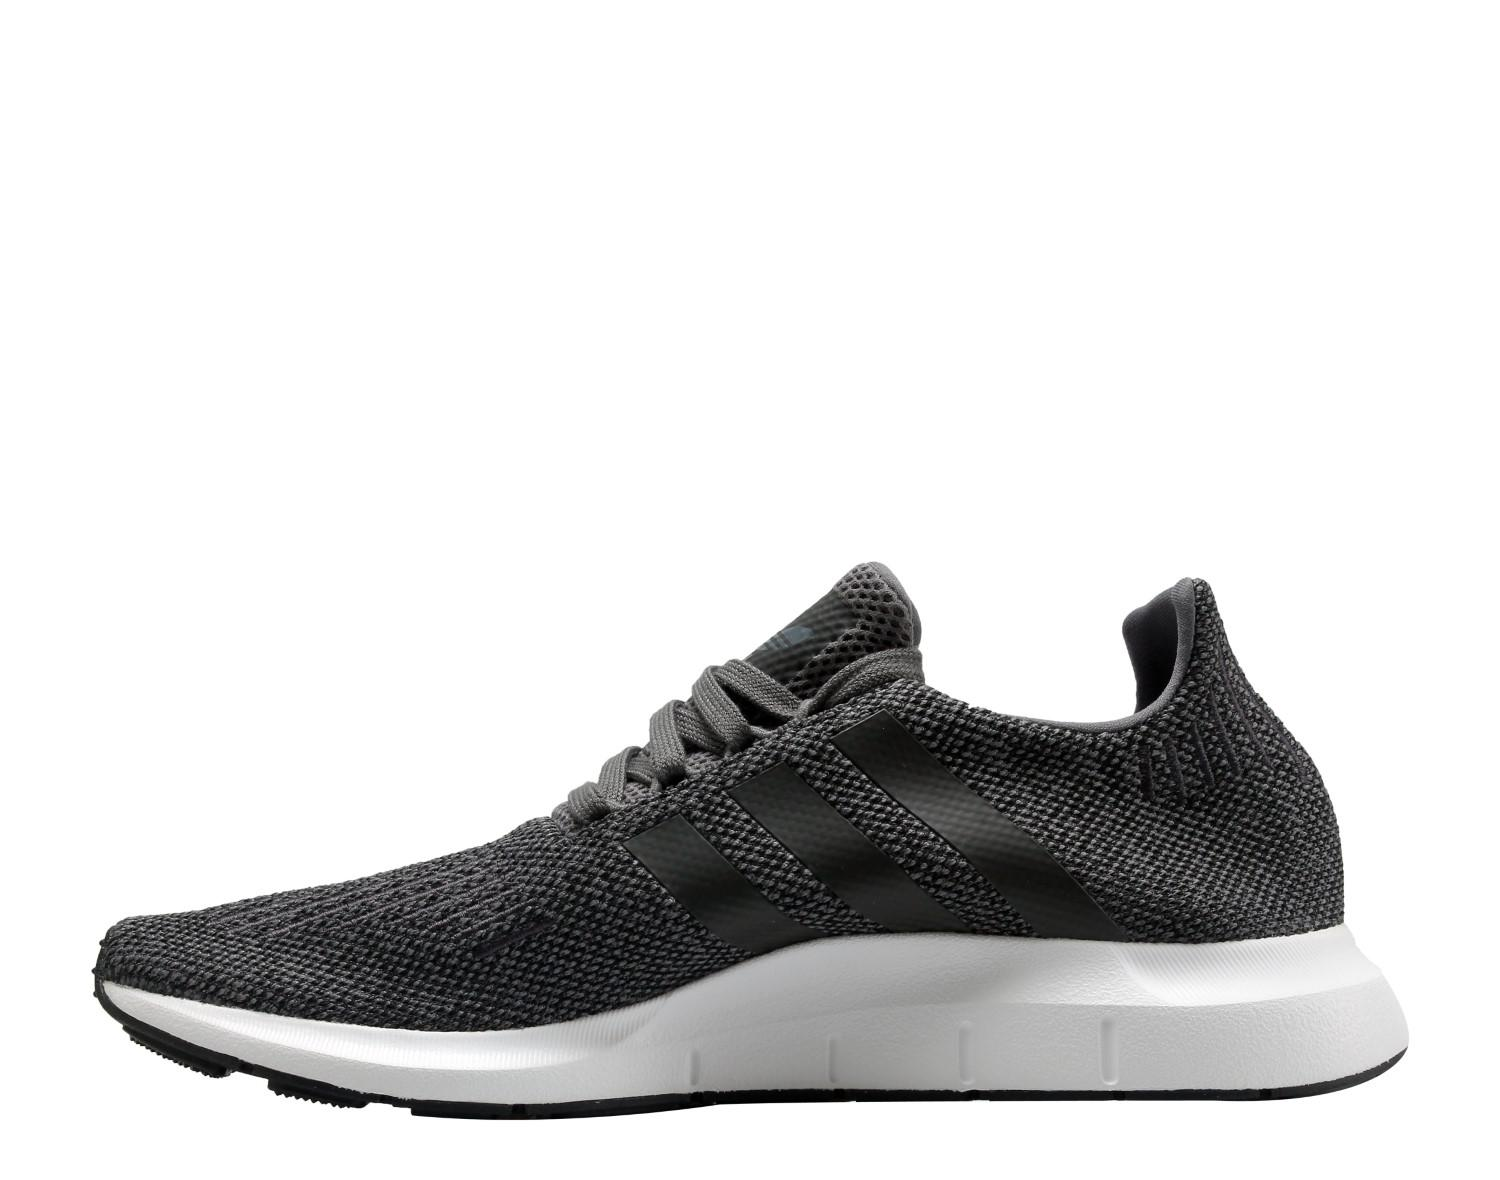 2c2f82bb0 Lyst - adidas Originals Swift Run Four black white Running Shoes ...